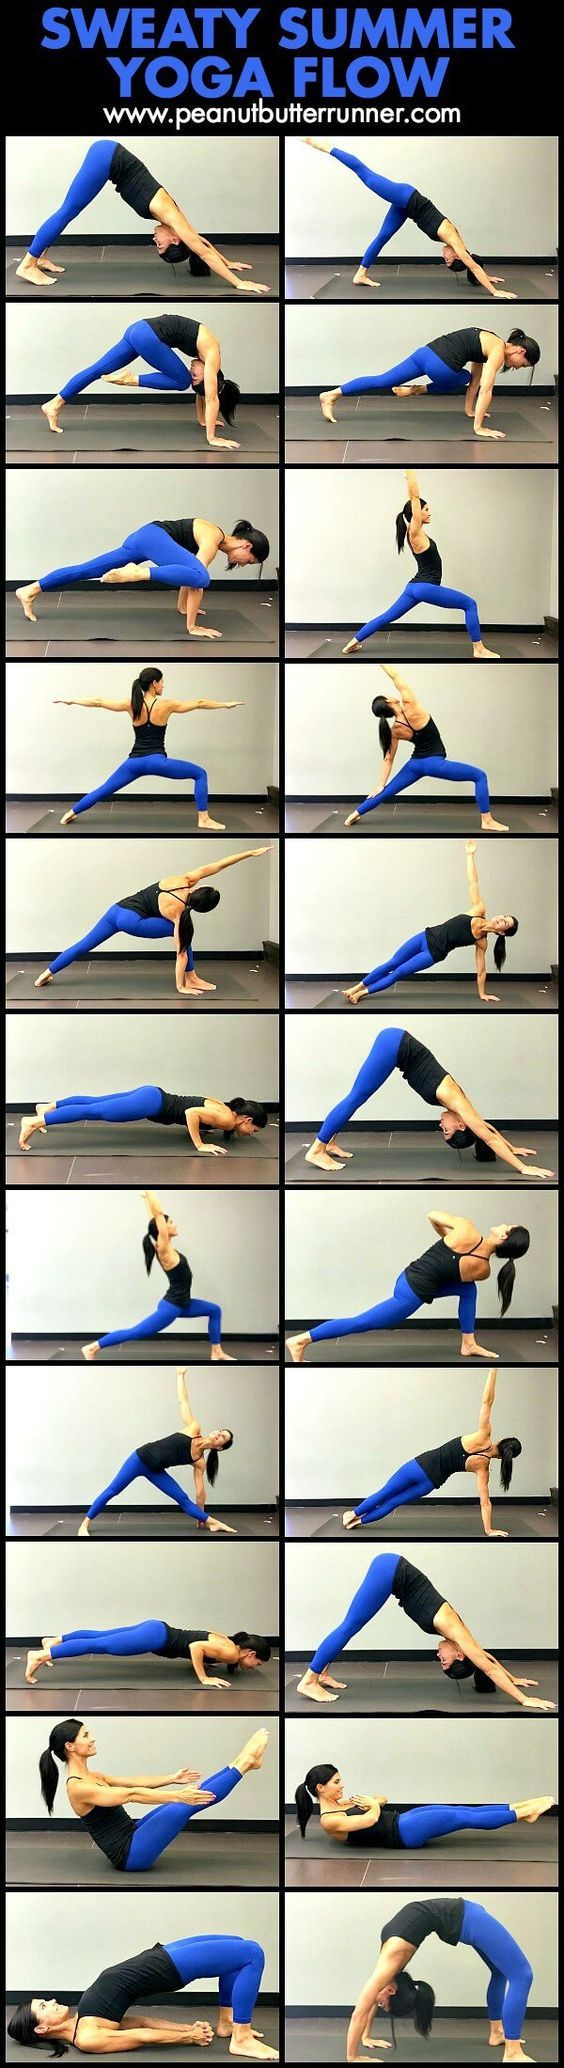 A sweaty summer yoga flow to strengthen and stretch. Down Dog, Right Side Three Point, Cheetah, Three Point, Twisted Cheetah, Three Point,…